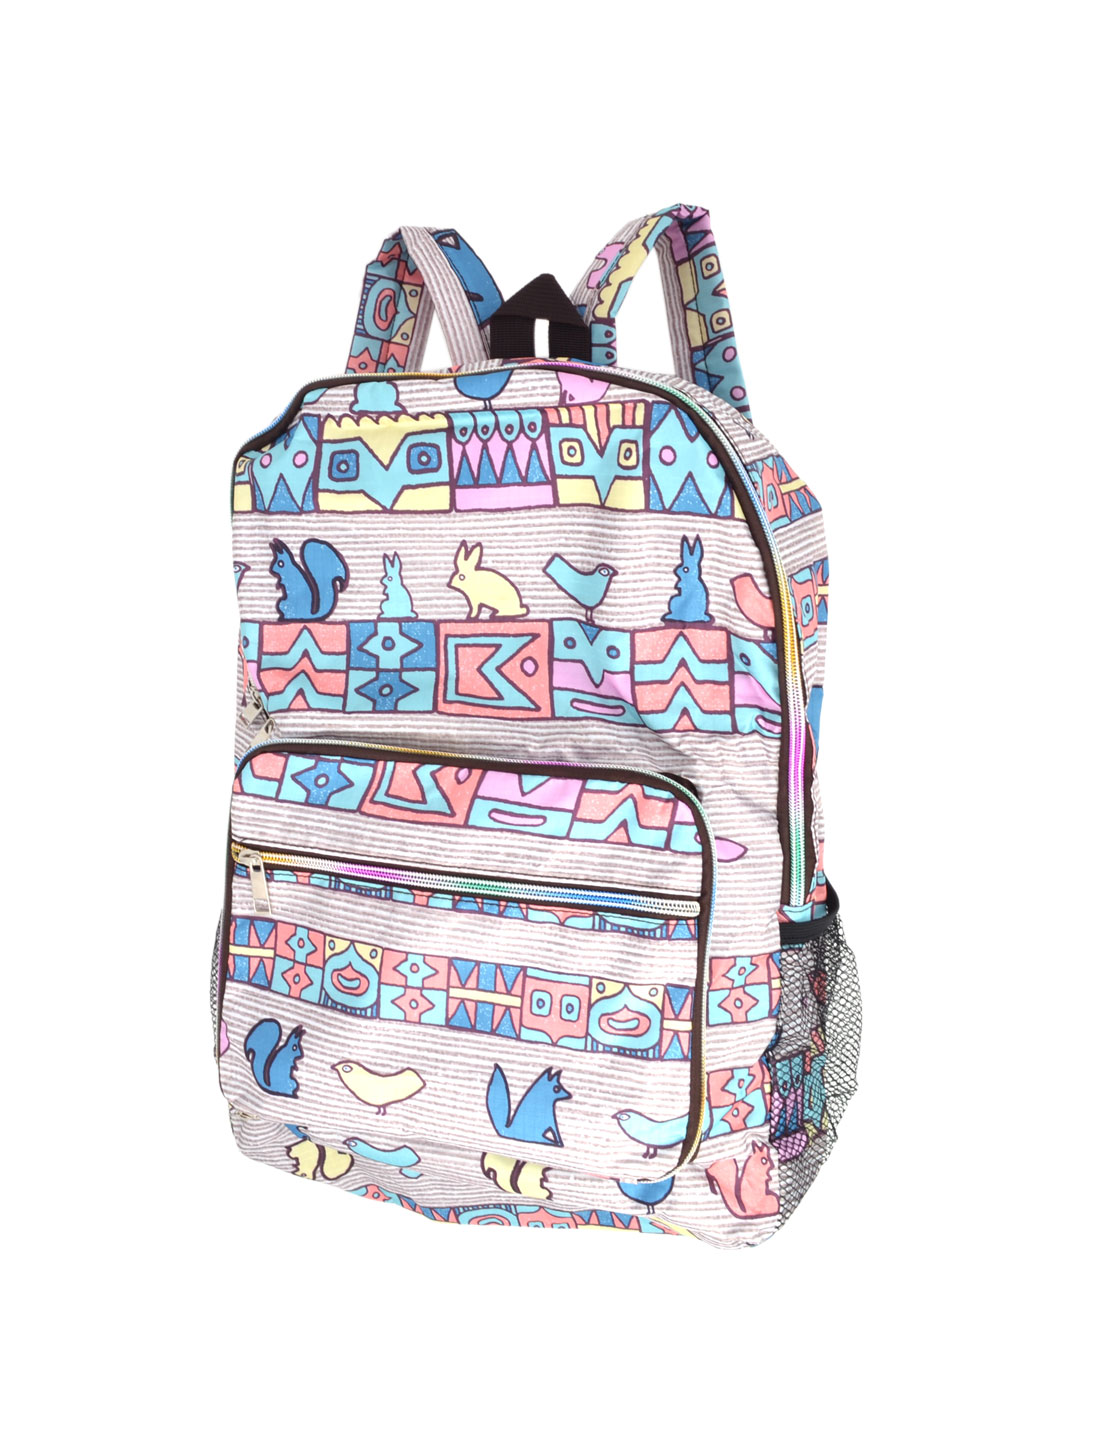 School Animal Geometric Prints Foldable Zip Up Wrist Cell Phone Packbag Bookbag Pouch